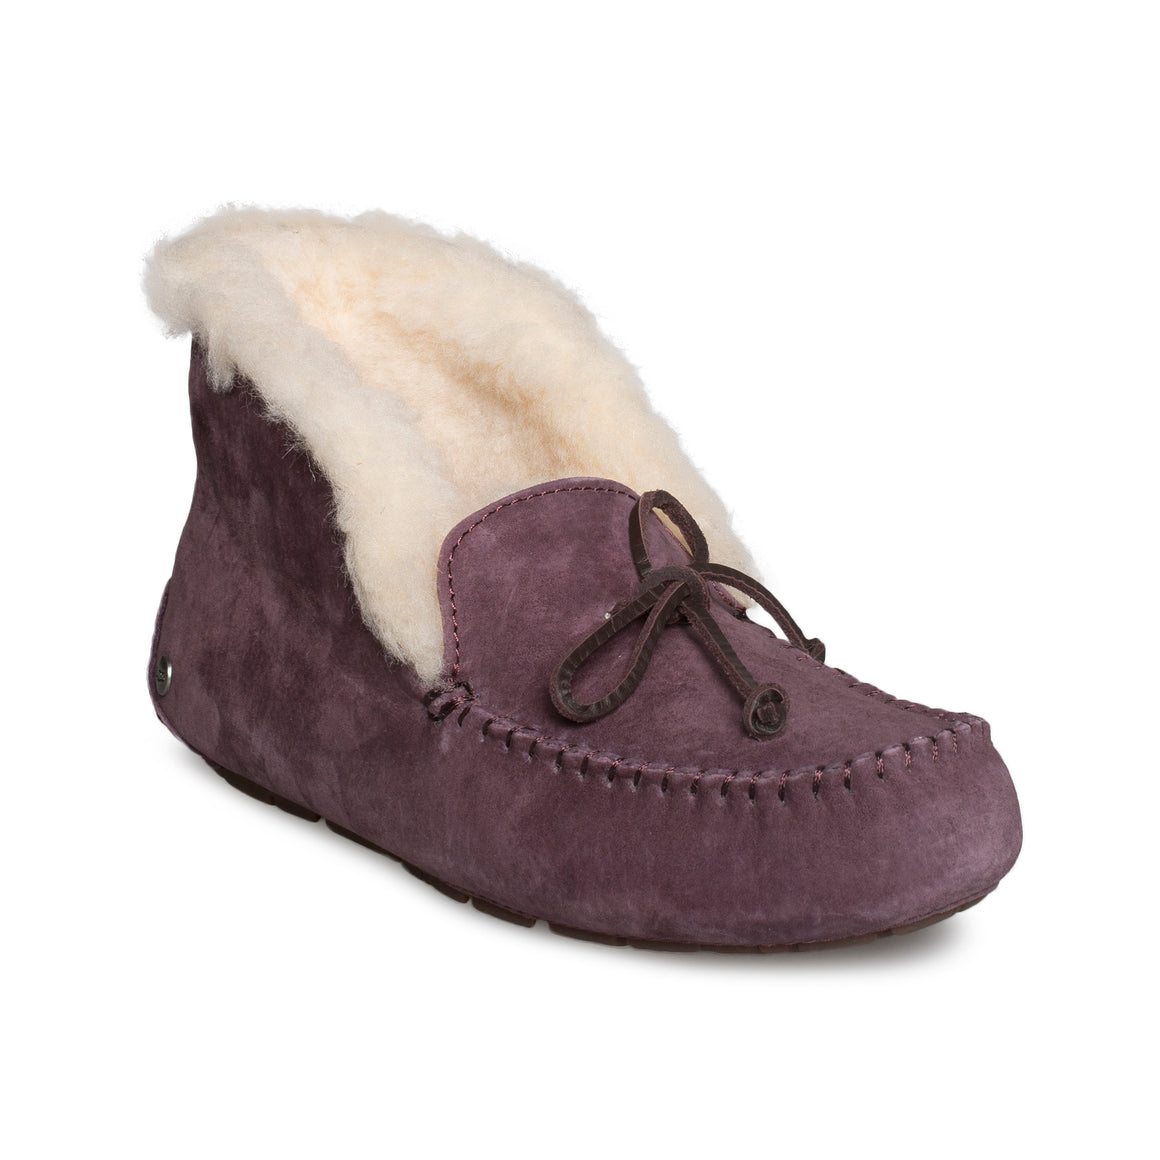 UGG Alena Port Slippers - Women's